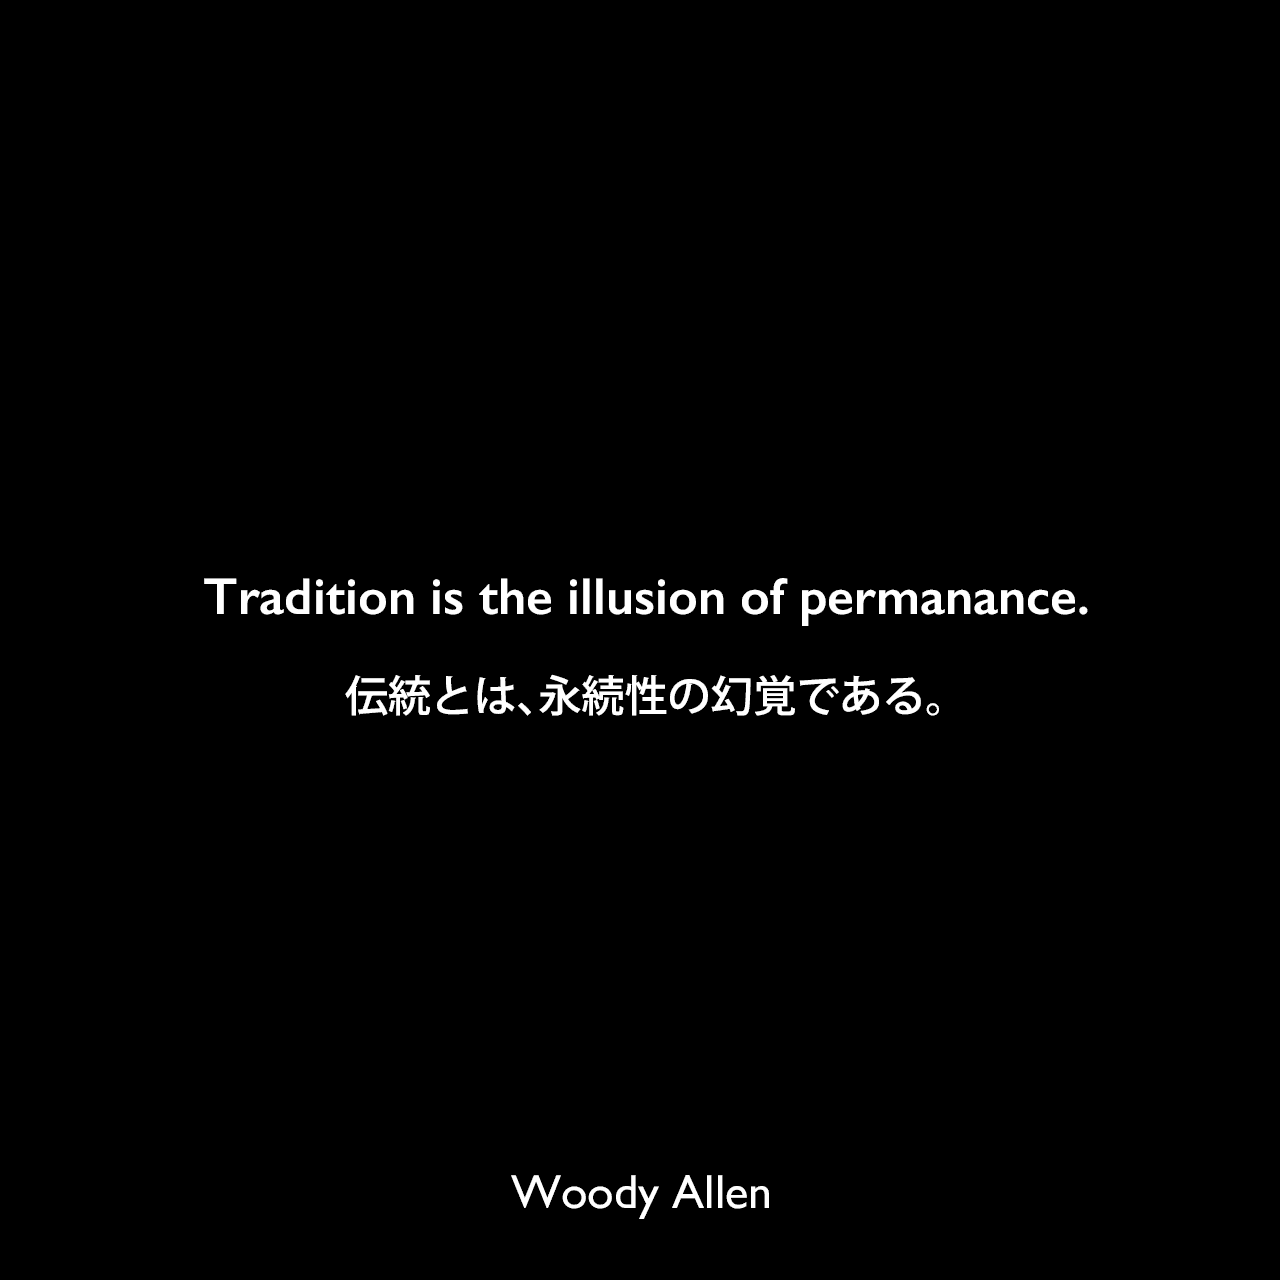 Tradition is the illusion of permanance.伝統とは、永続性の幻覚である。Woody Allen